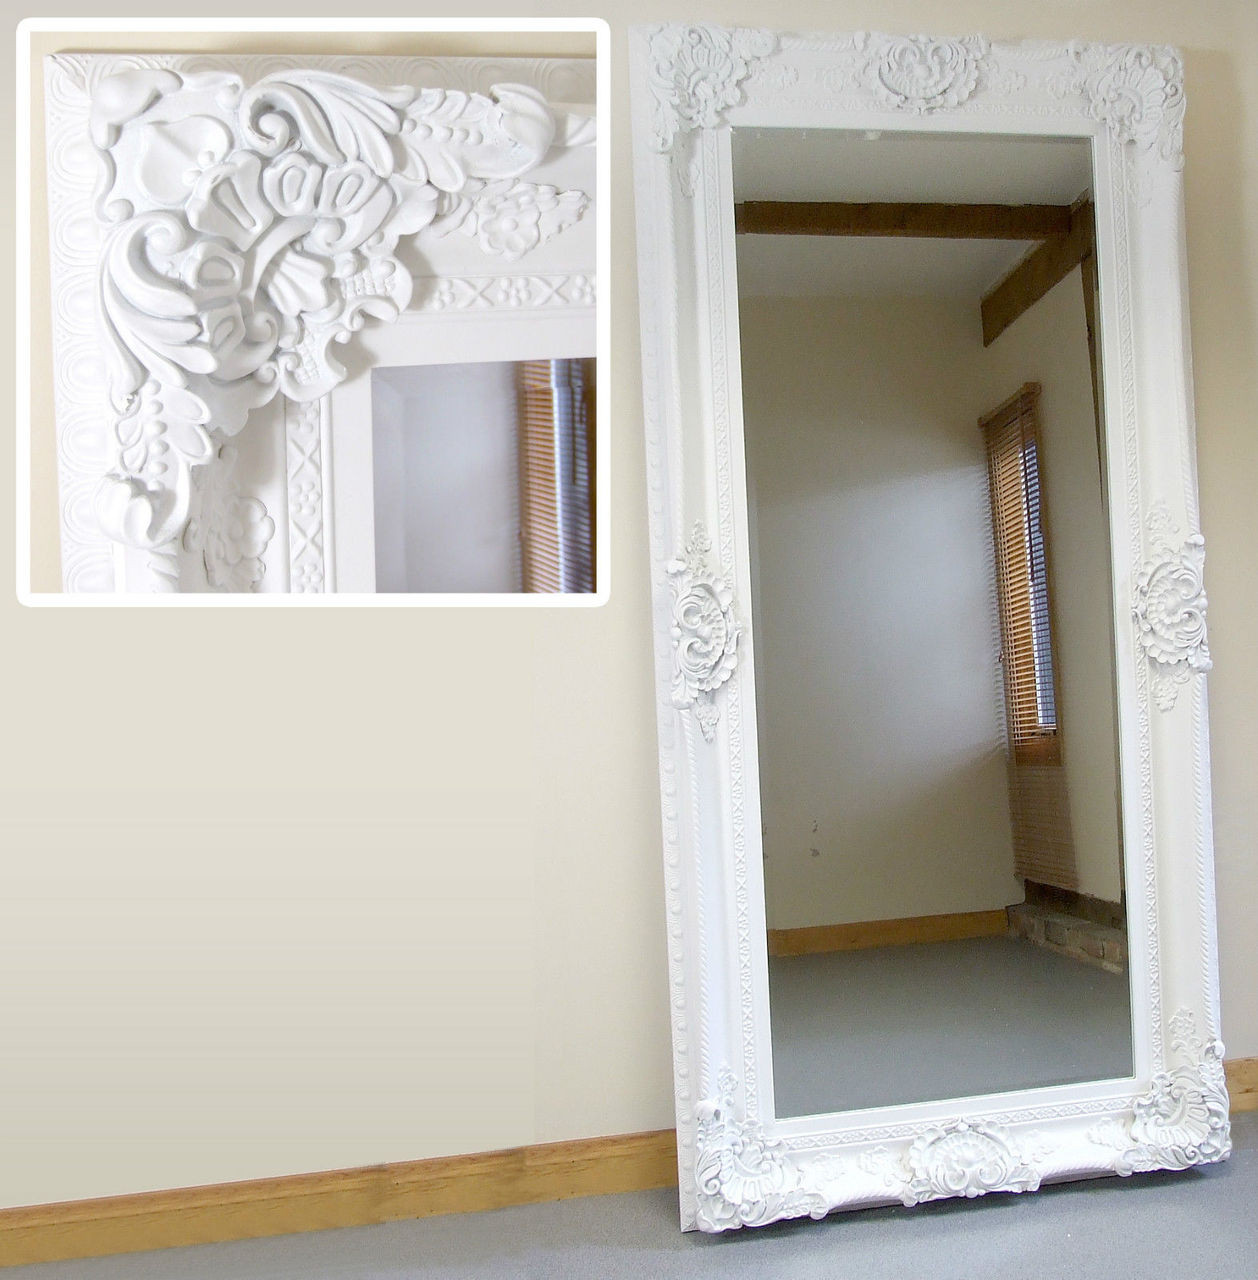 36 x 72 mirror languageblag image seville ornate large french full length wall leaner mirror white 36